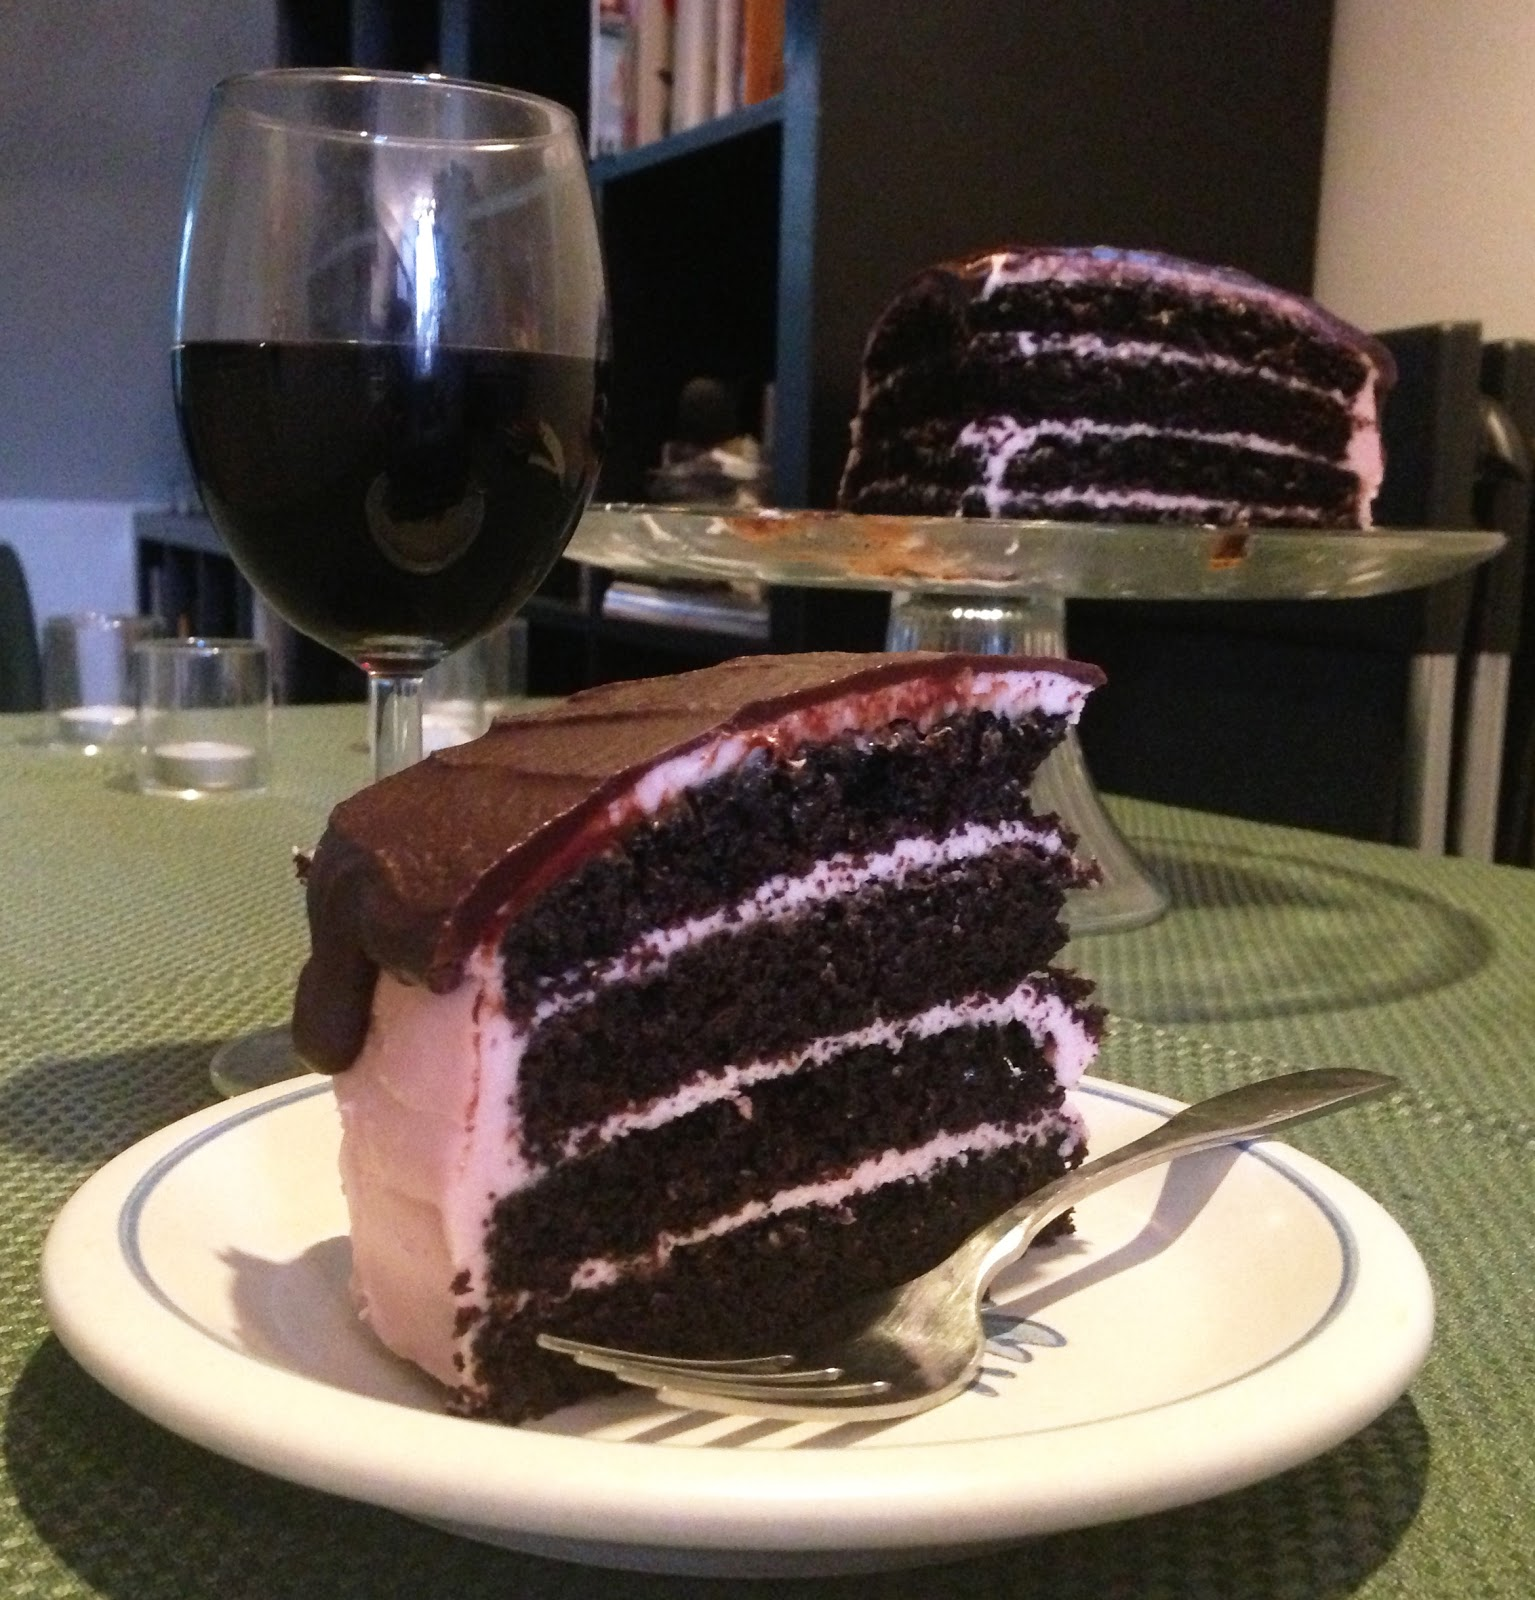 Running Late, Funny Text Exchange, And Wino Birthday Fun With Coffee: Random Tuesday Thoughts